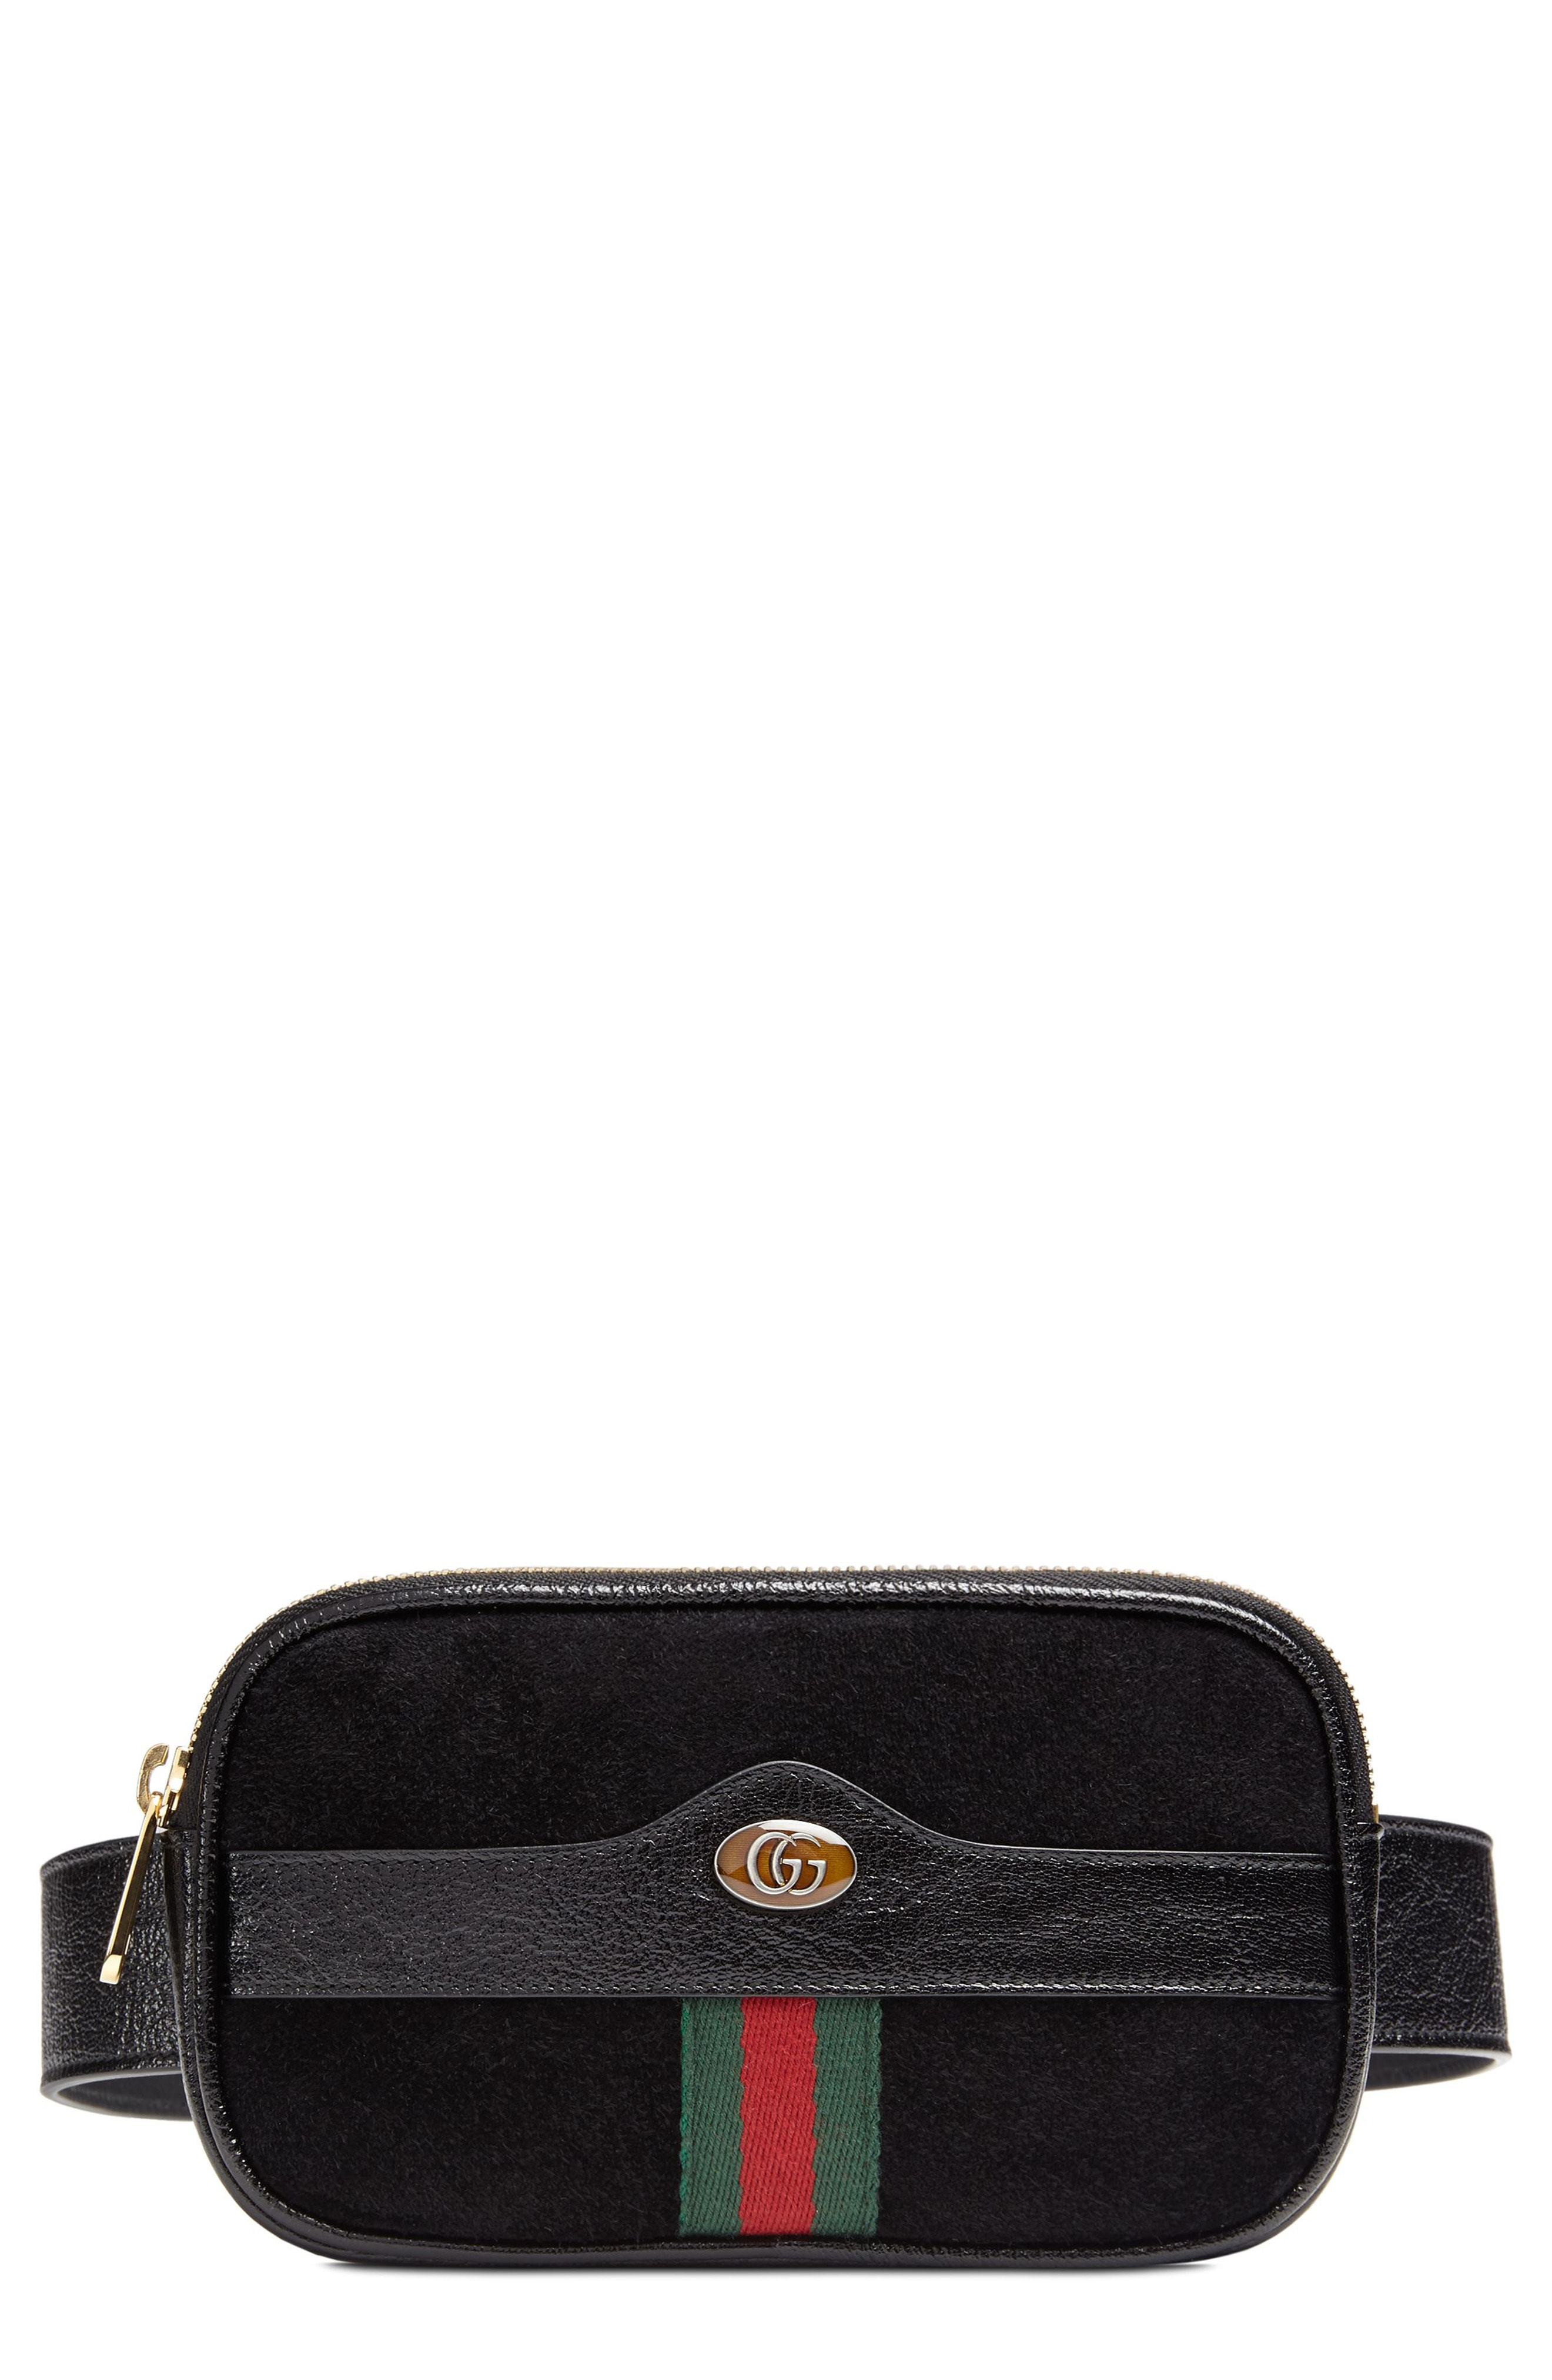 6a9e80e485683b Gucci Ophidia Suede Leather Belt Bag, $790   Nordstrom   Lookastic.com